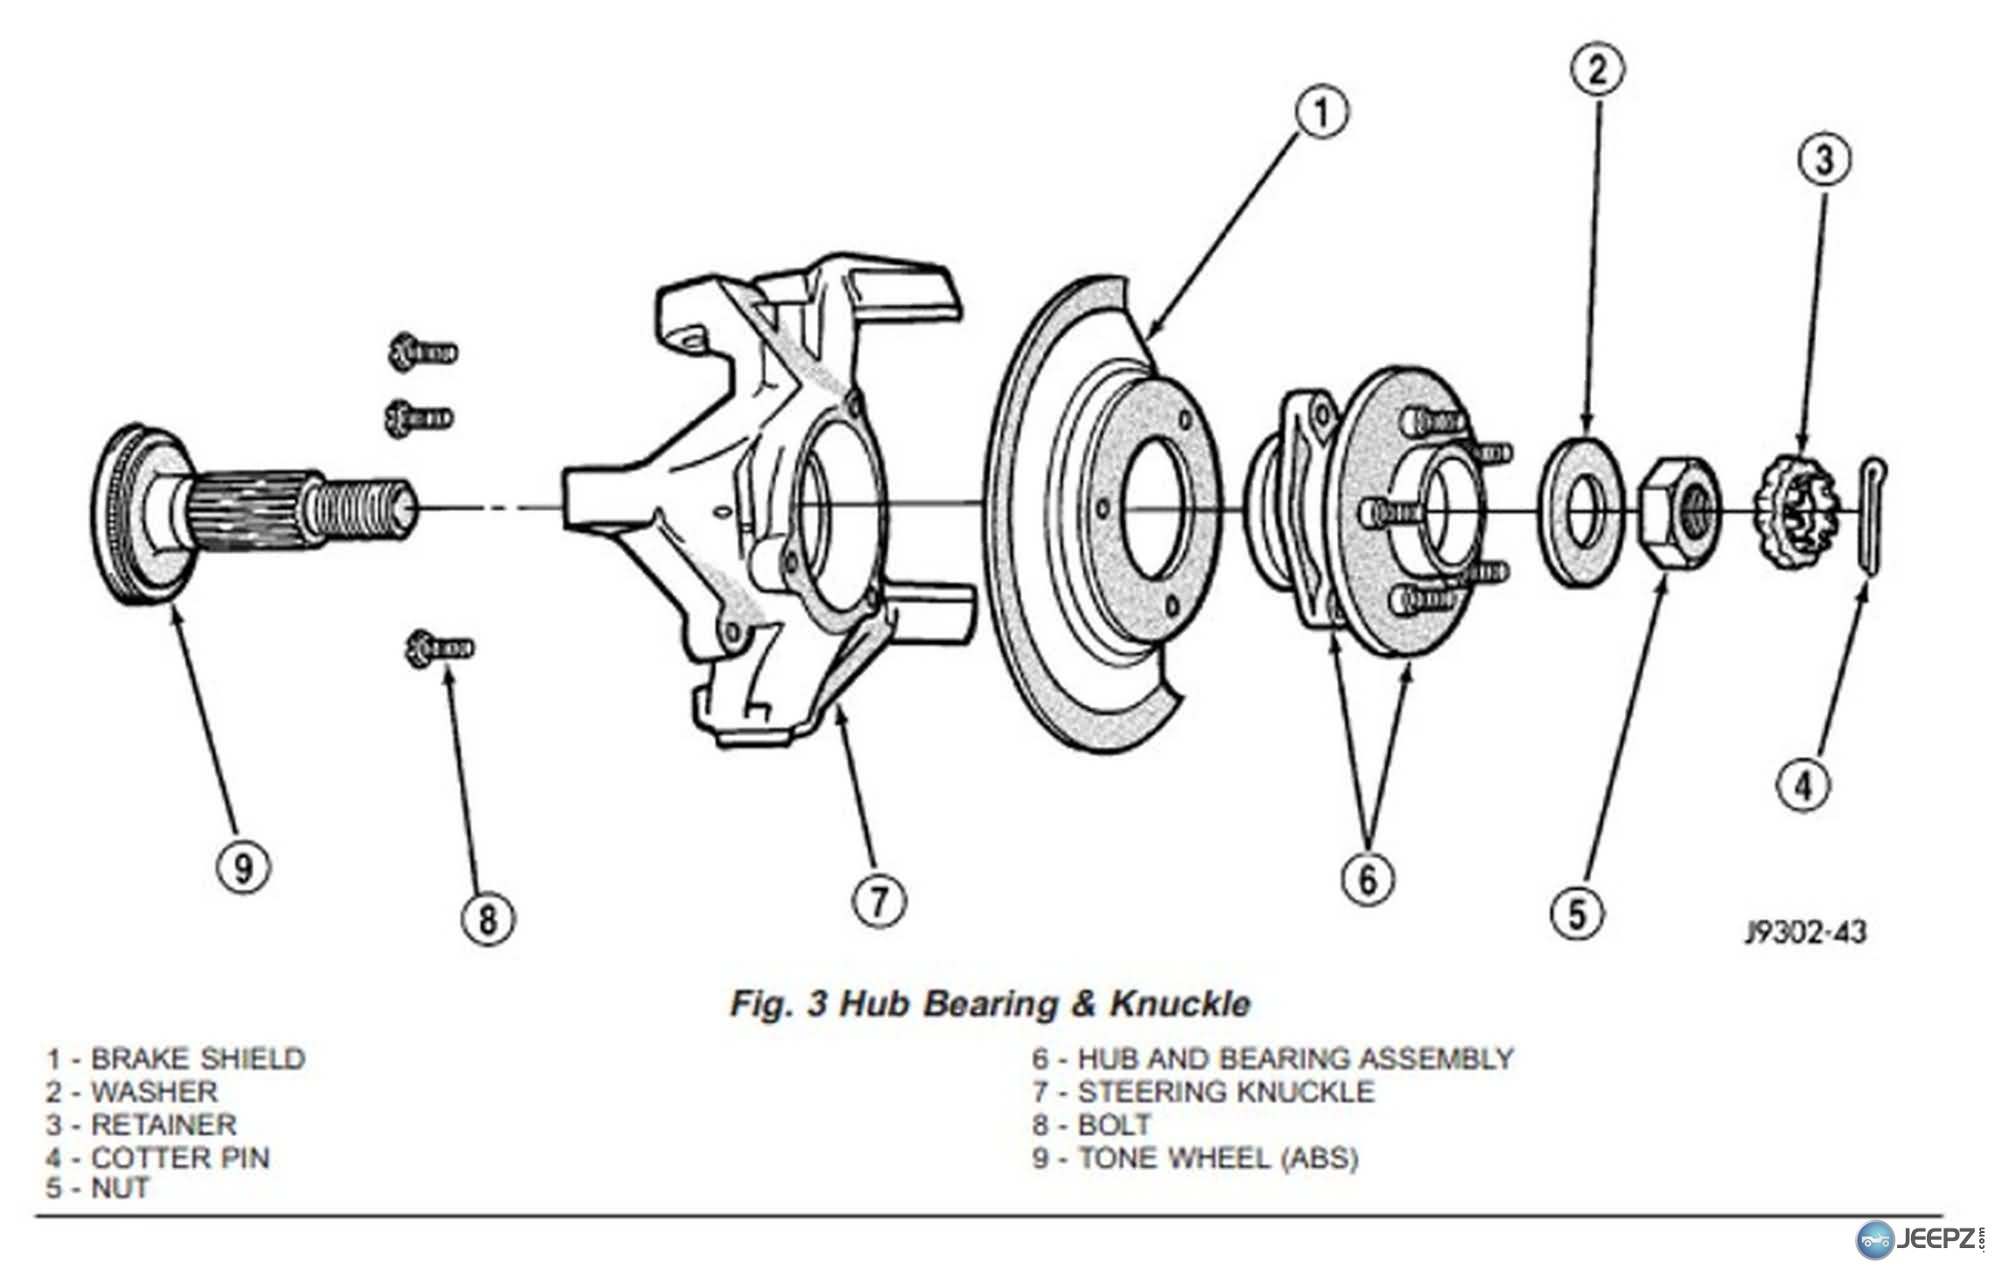 1995 Jeep Wrangler Fuse Box Location Wiring Library Tj Wheel Hub Bearing Assembly Replacement 1 Exploded